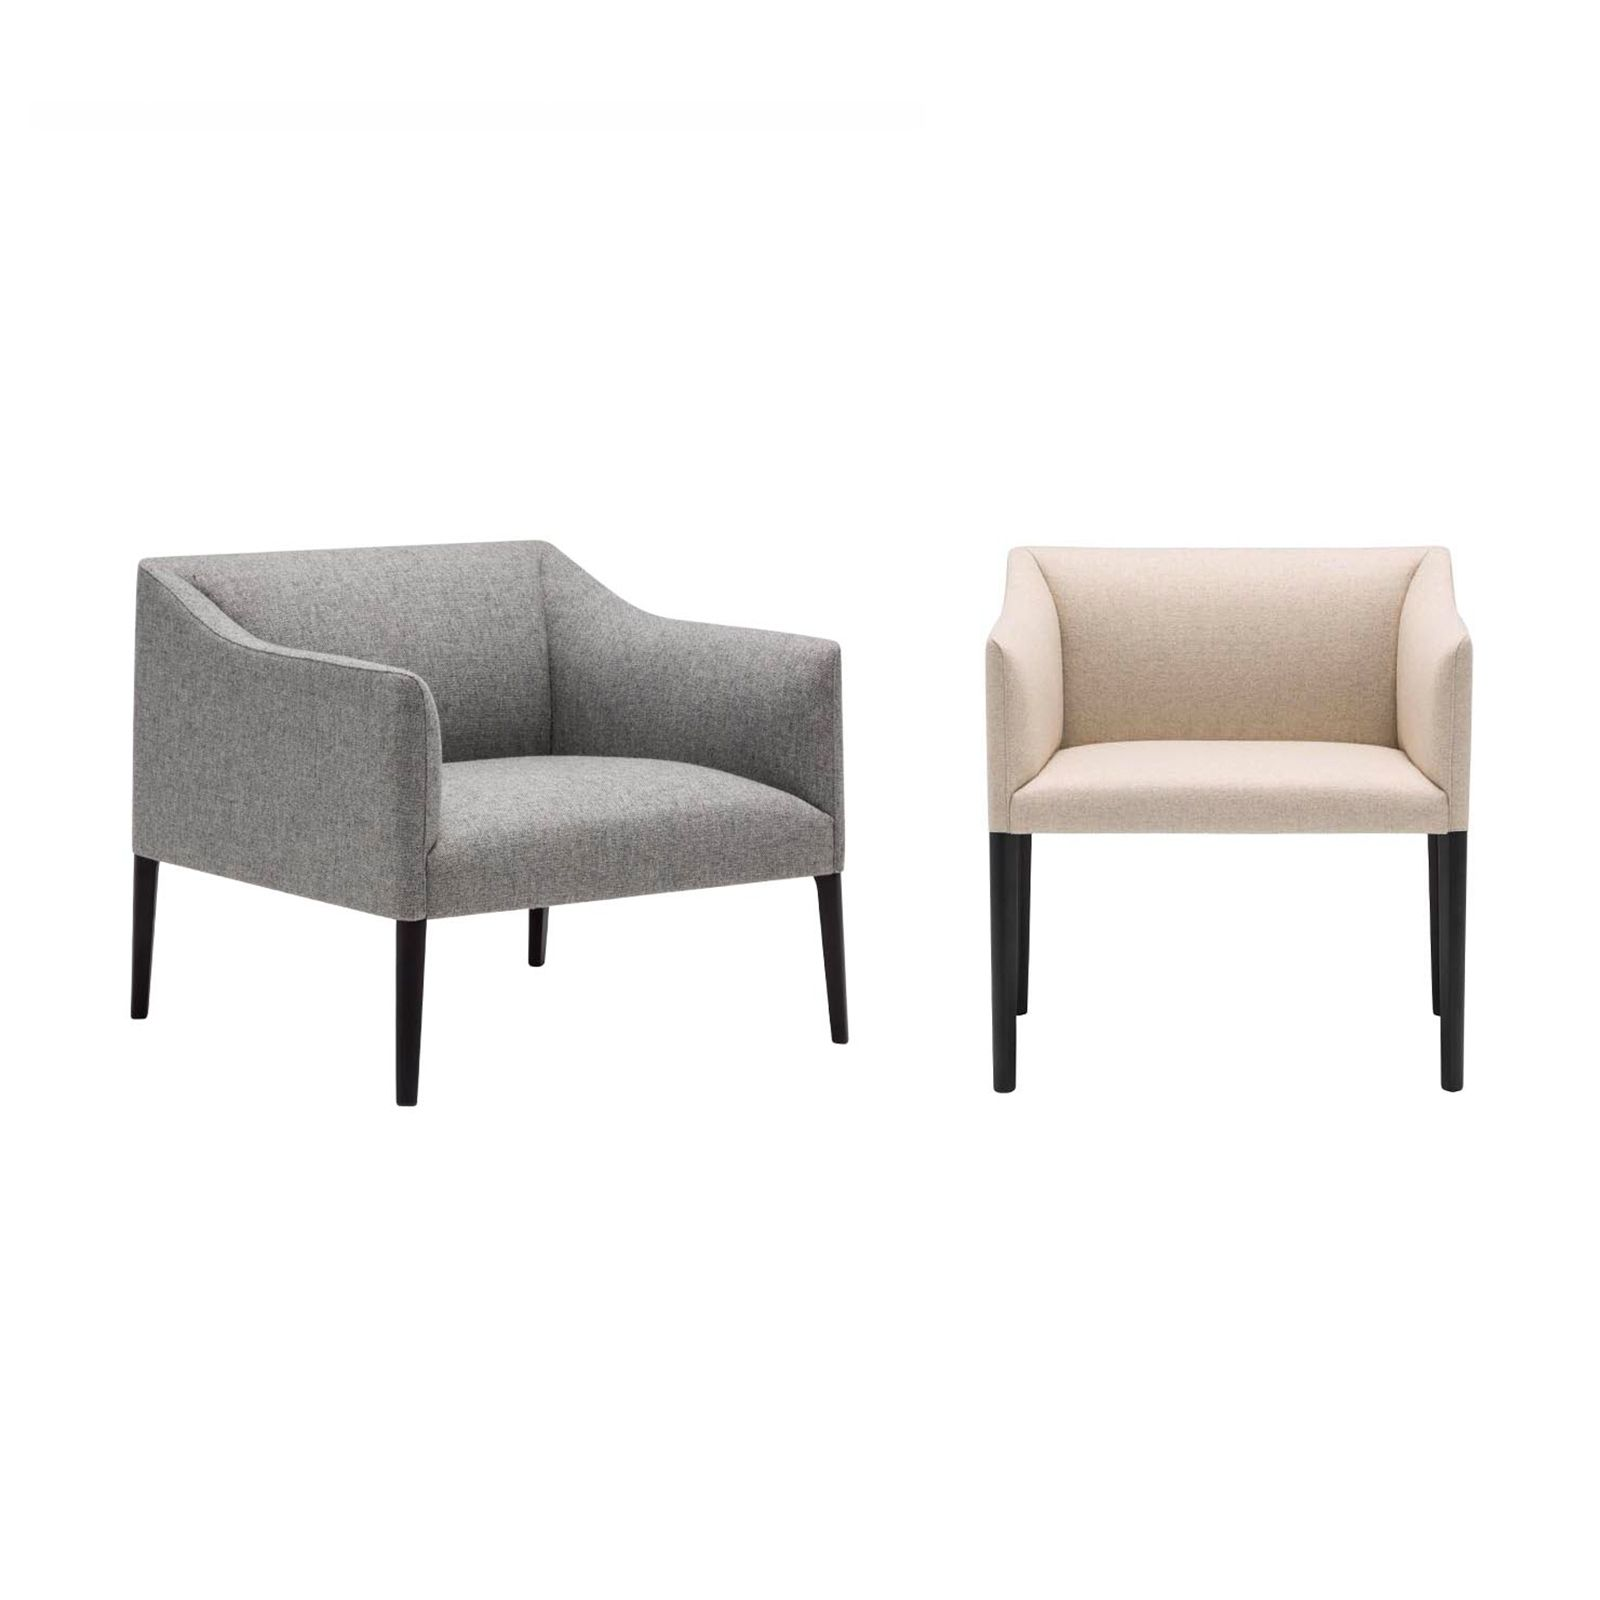 COUVE LOUNGE CHAIR